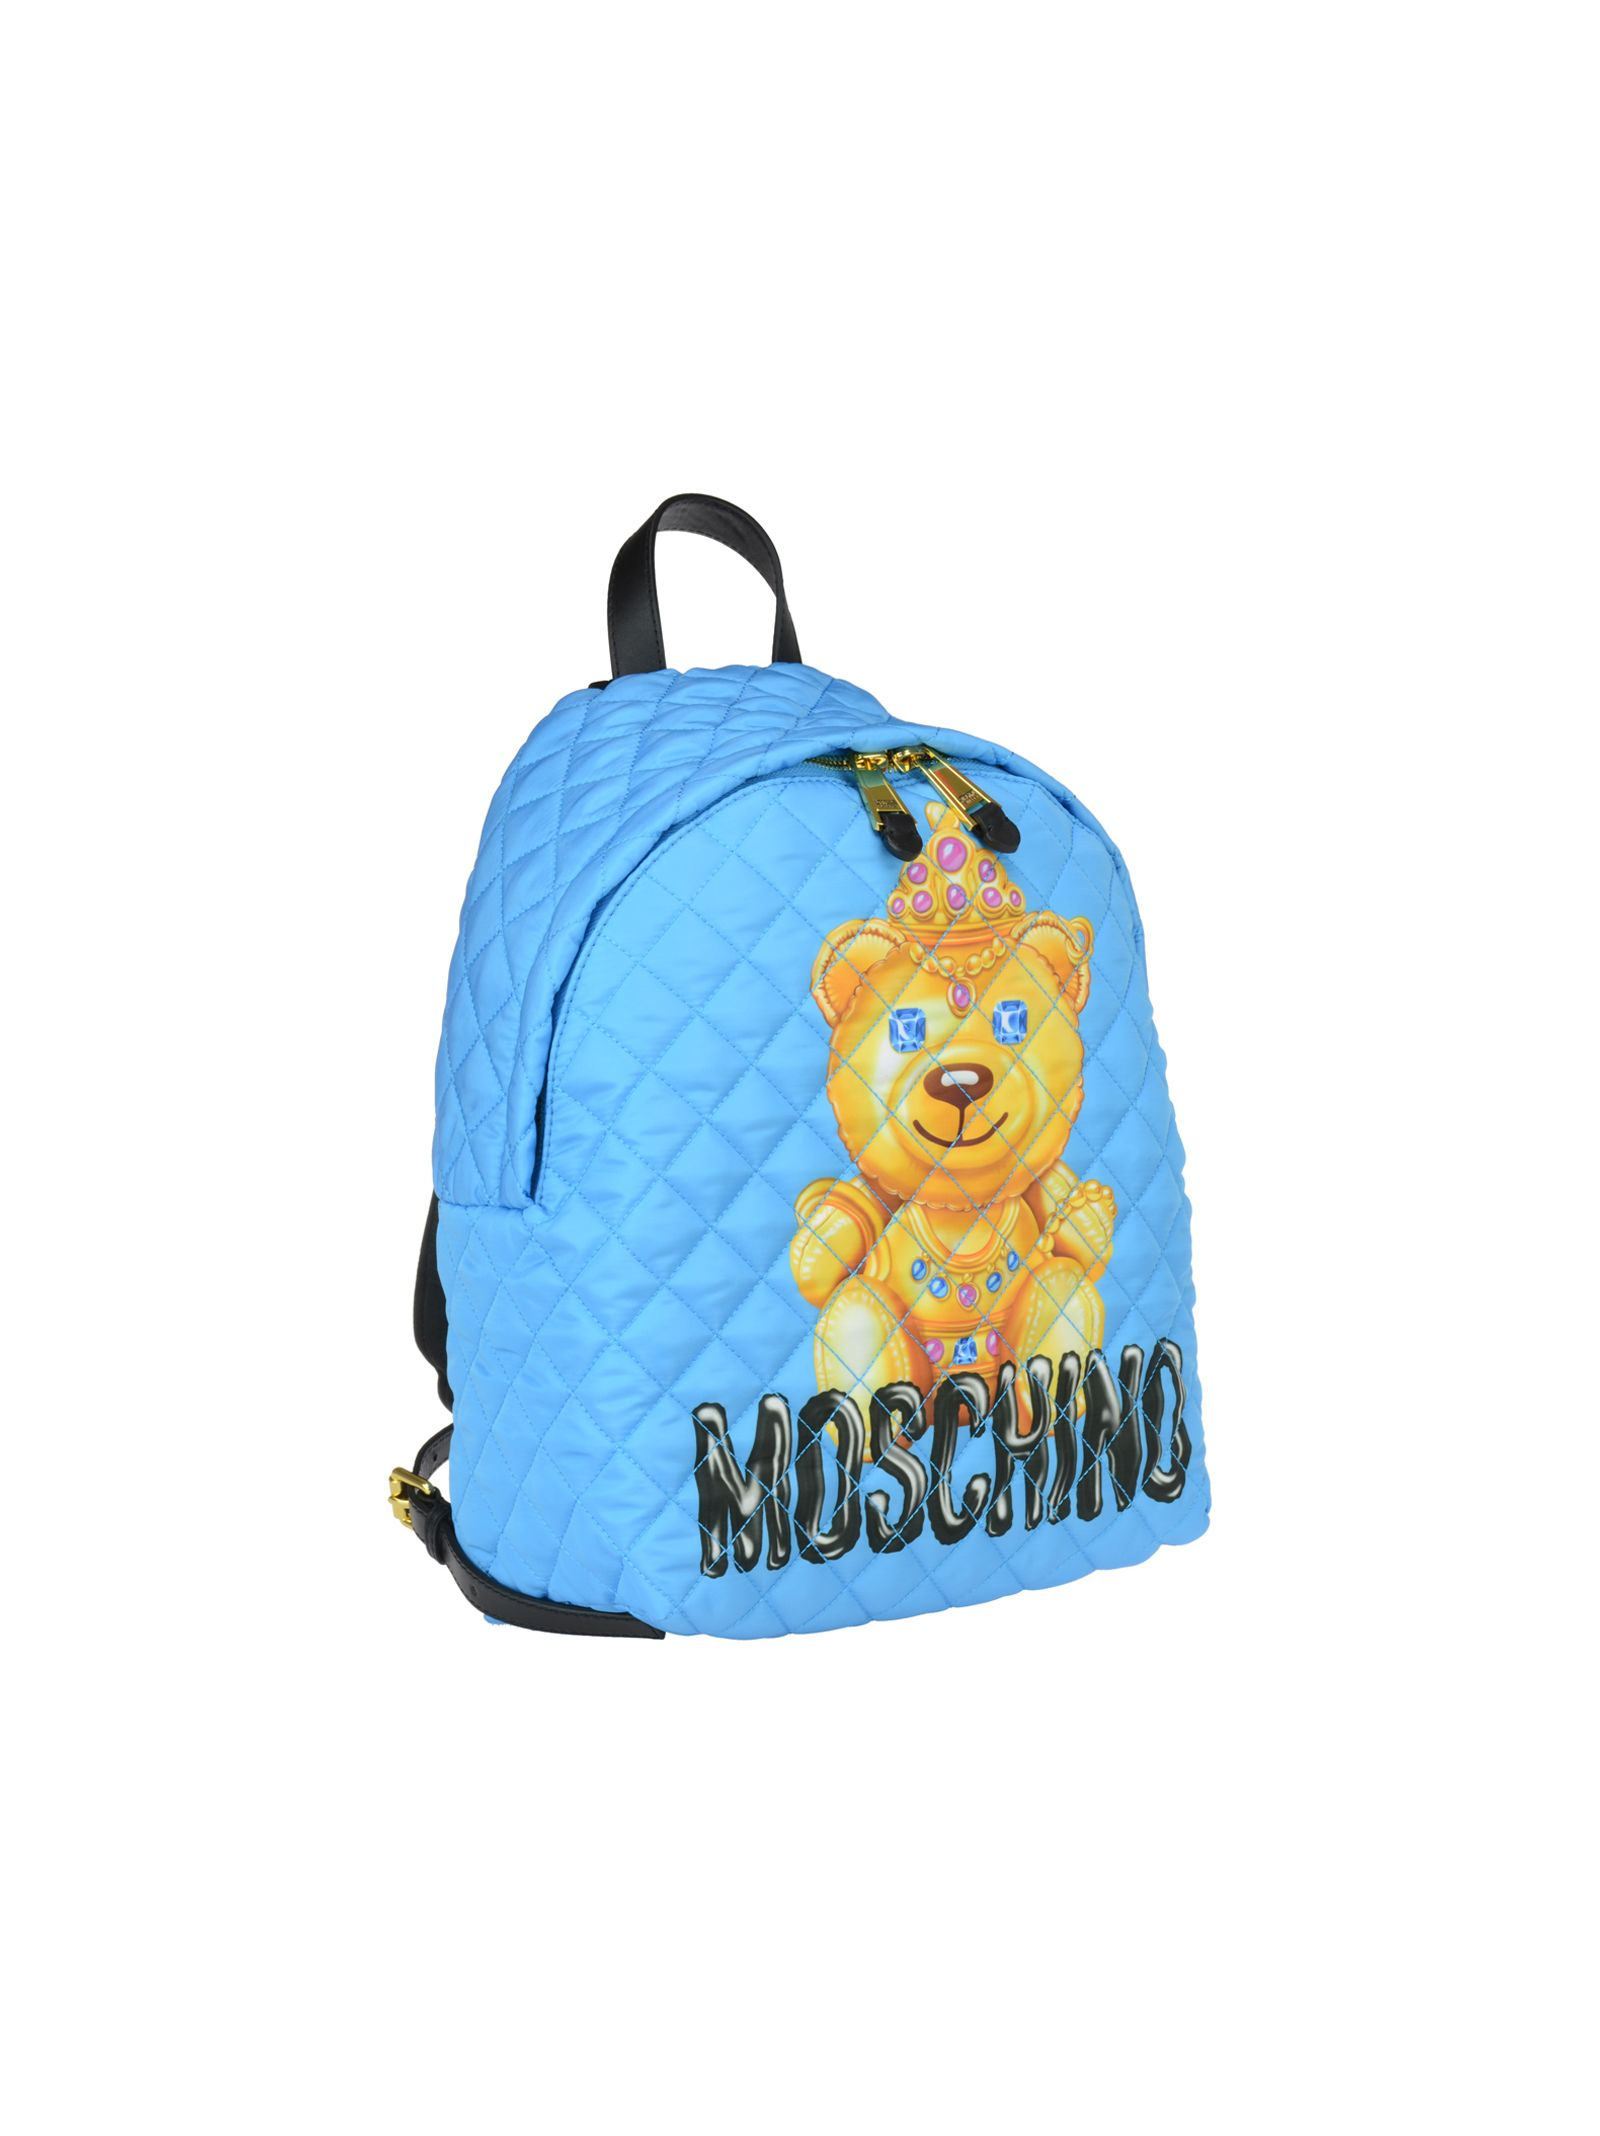 Moschino Backpack - Moschino - Andrea 2